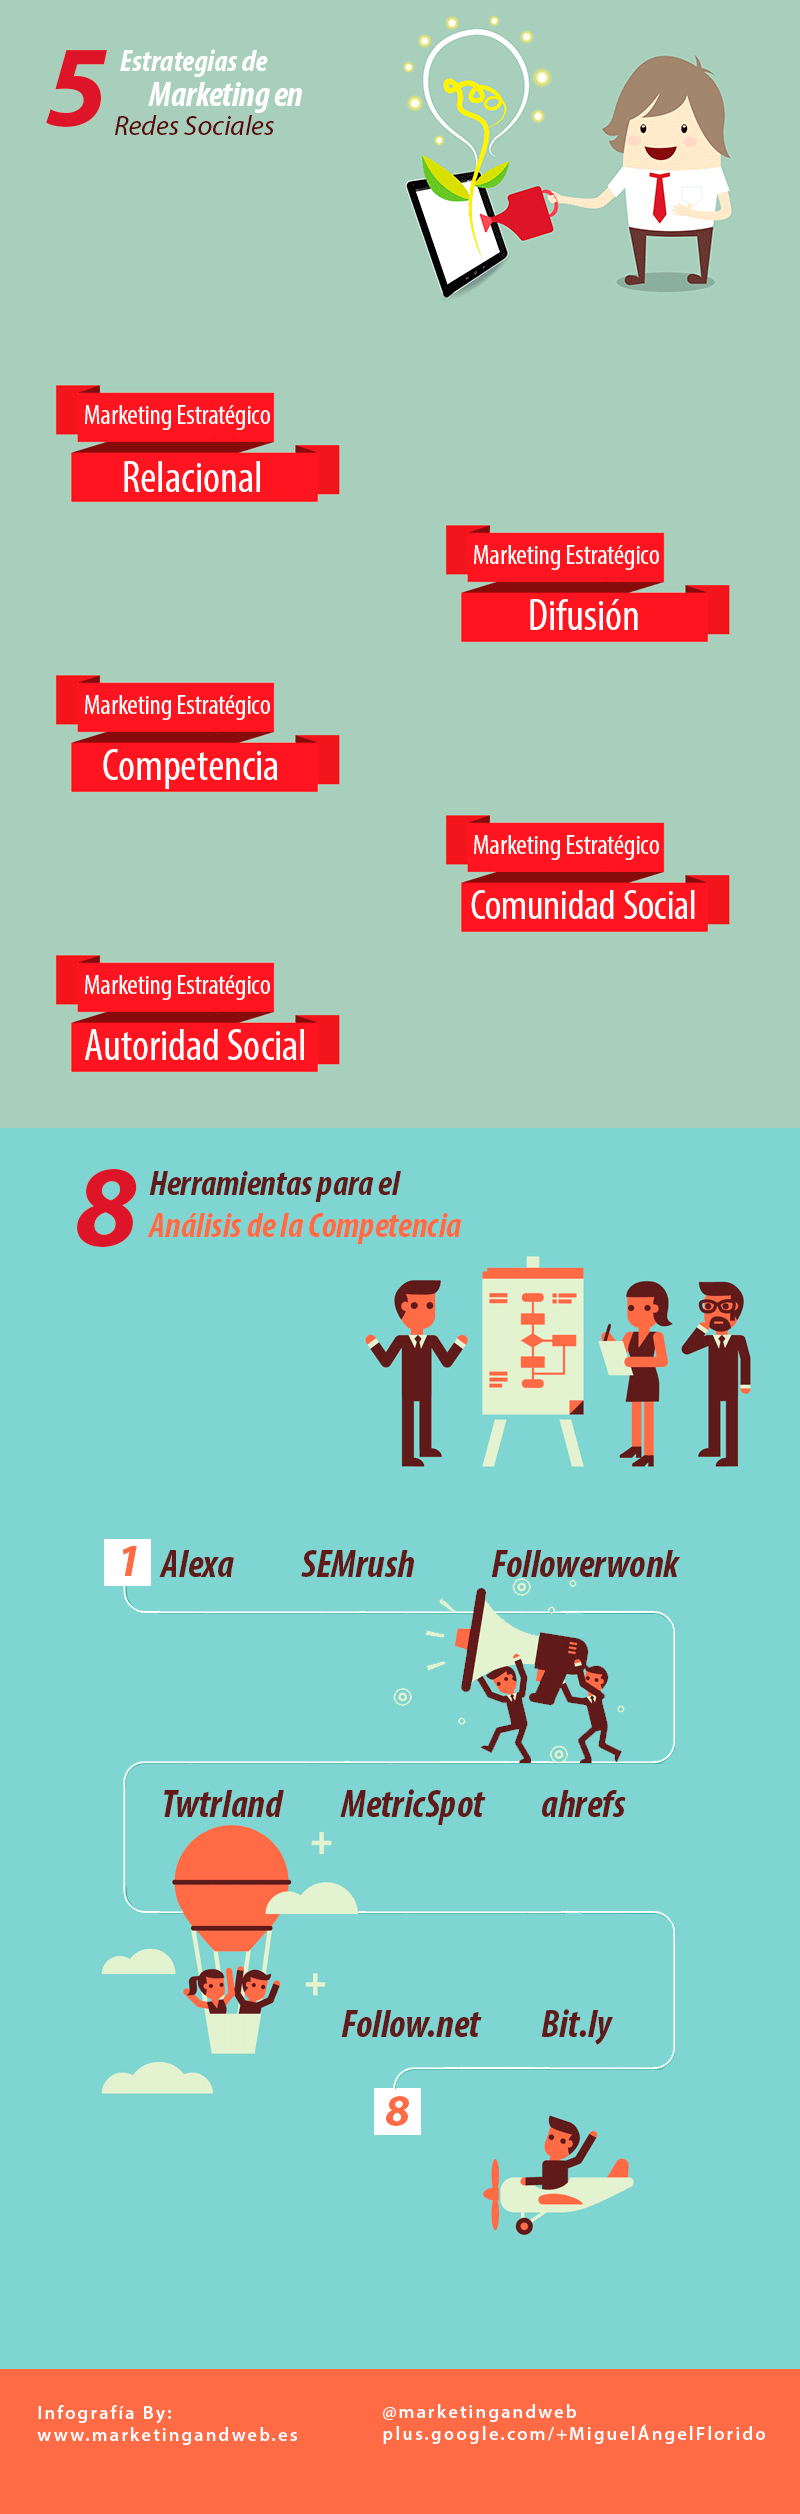 Marketing estratégico en Redes Sociales